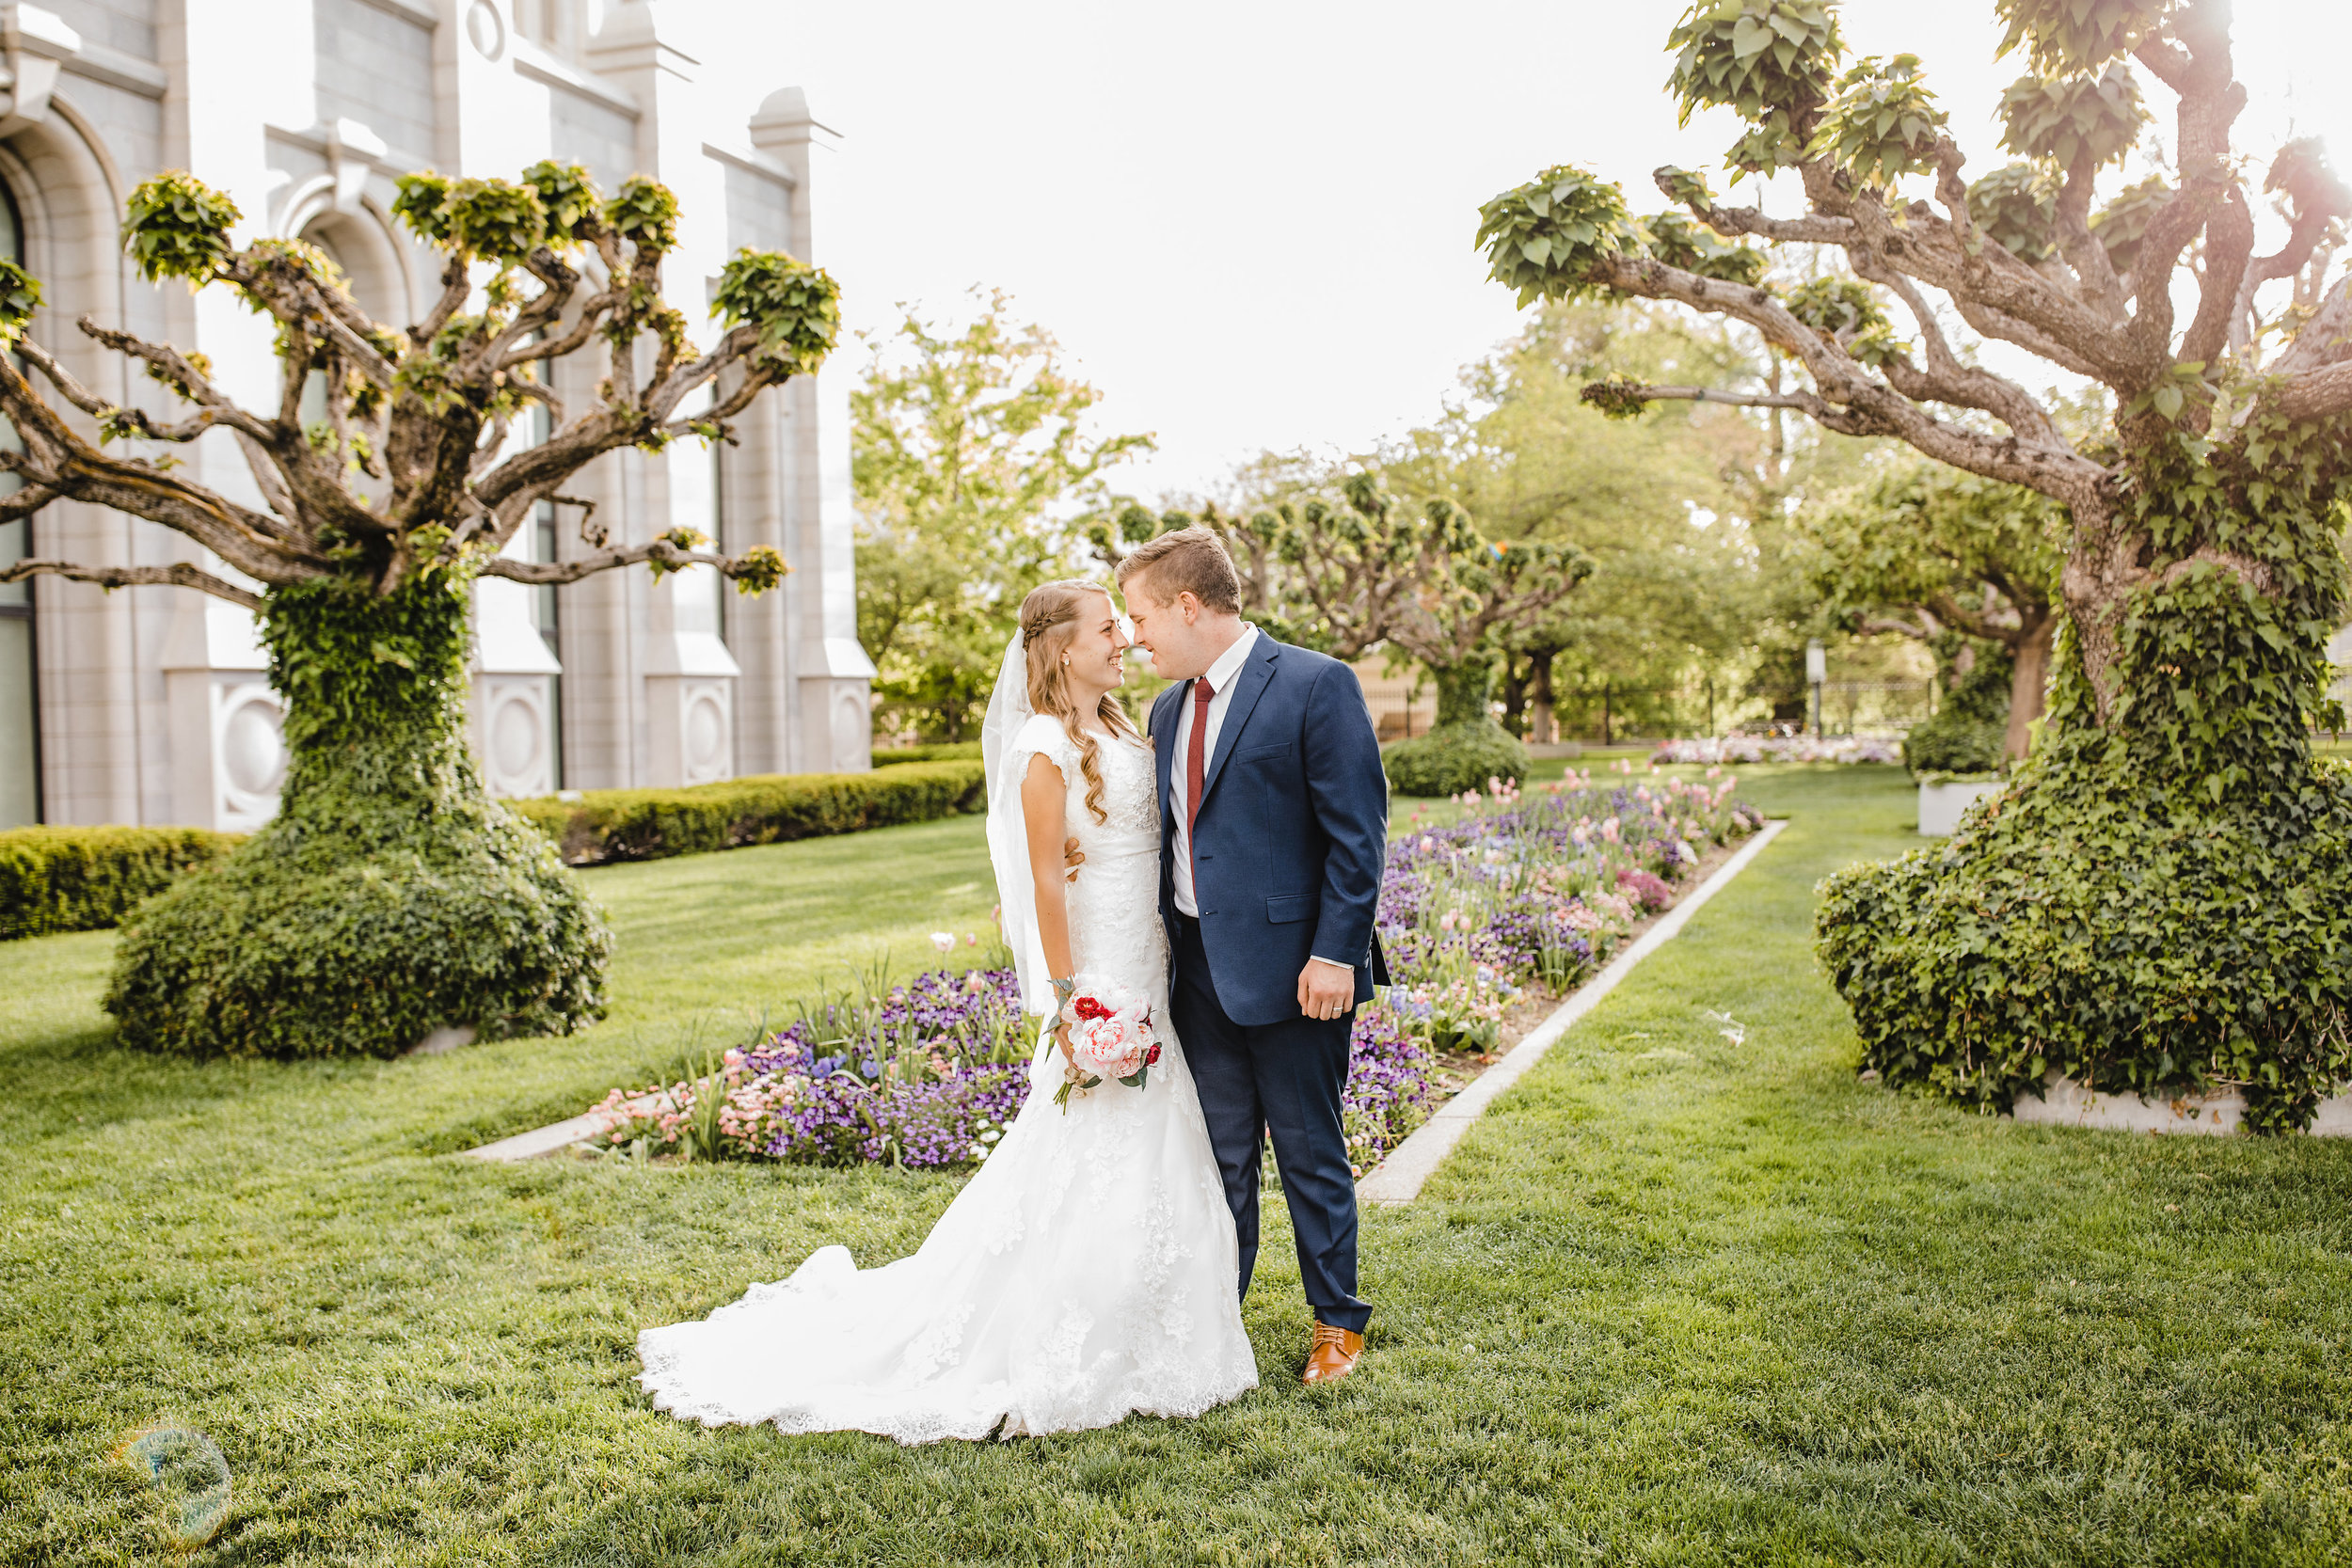 professional wedding photos arvada colorado bride and groom temple grounds light and airy natural editing arvada co